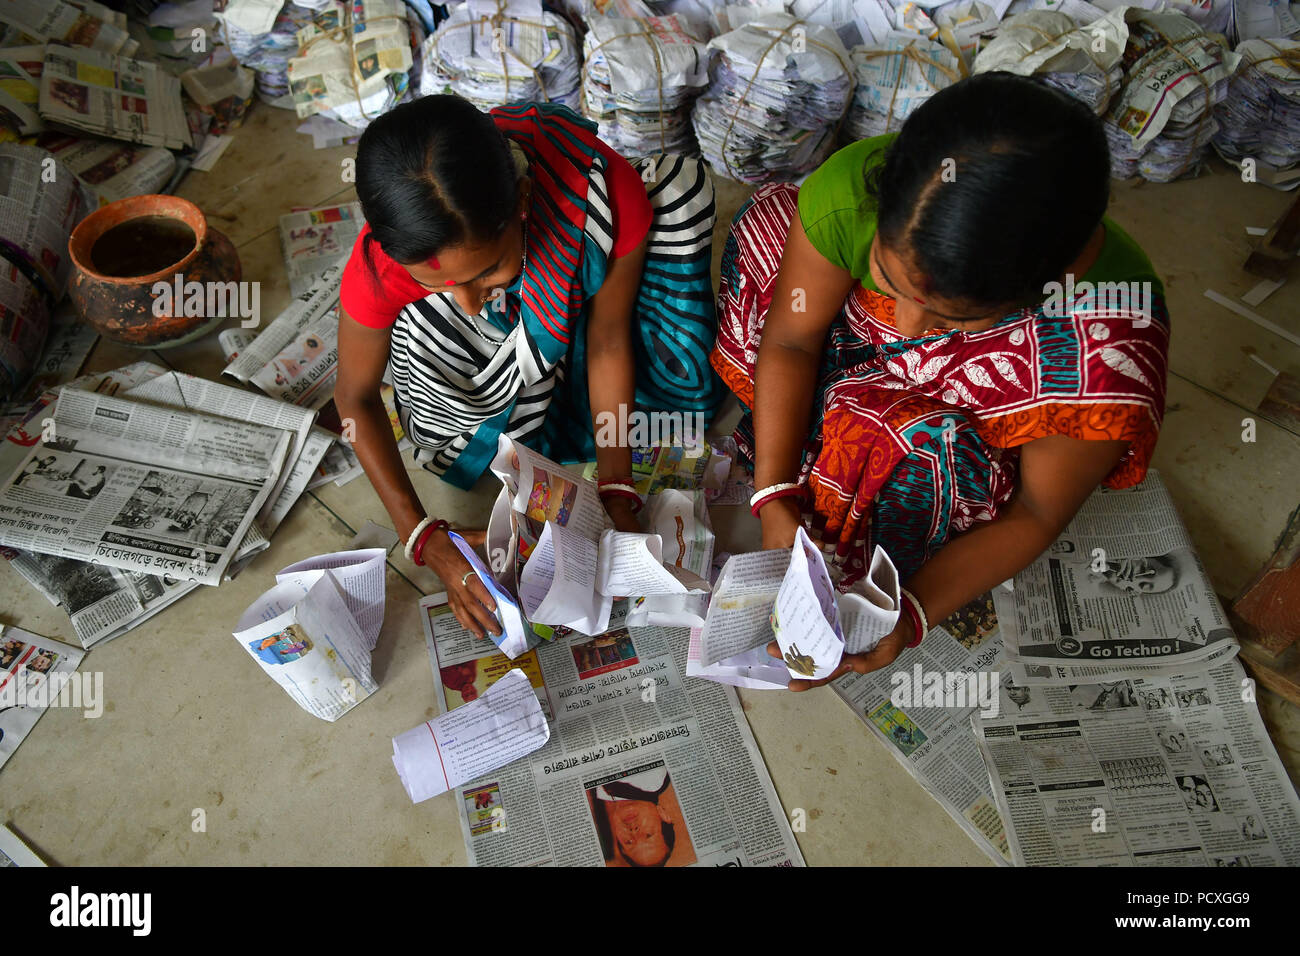 Agartala Tripura India 3rd Aug 2018 Indian Workers Seen Making